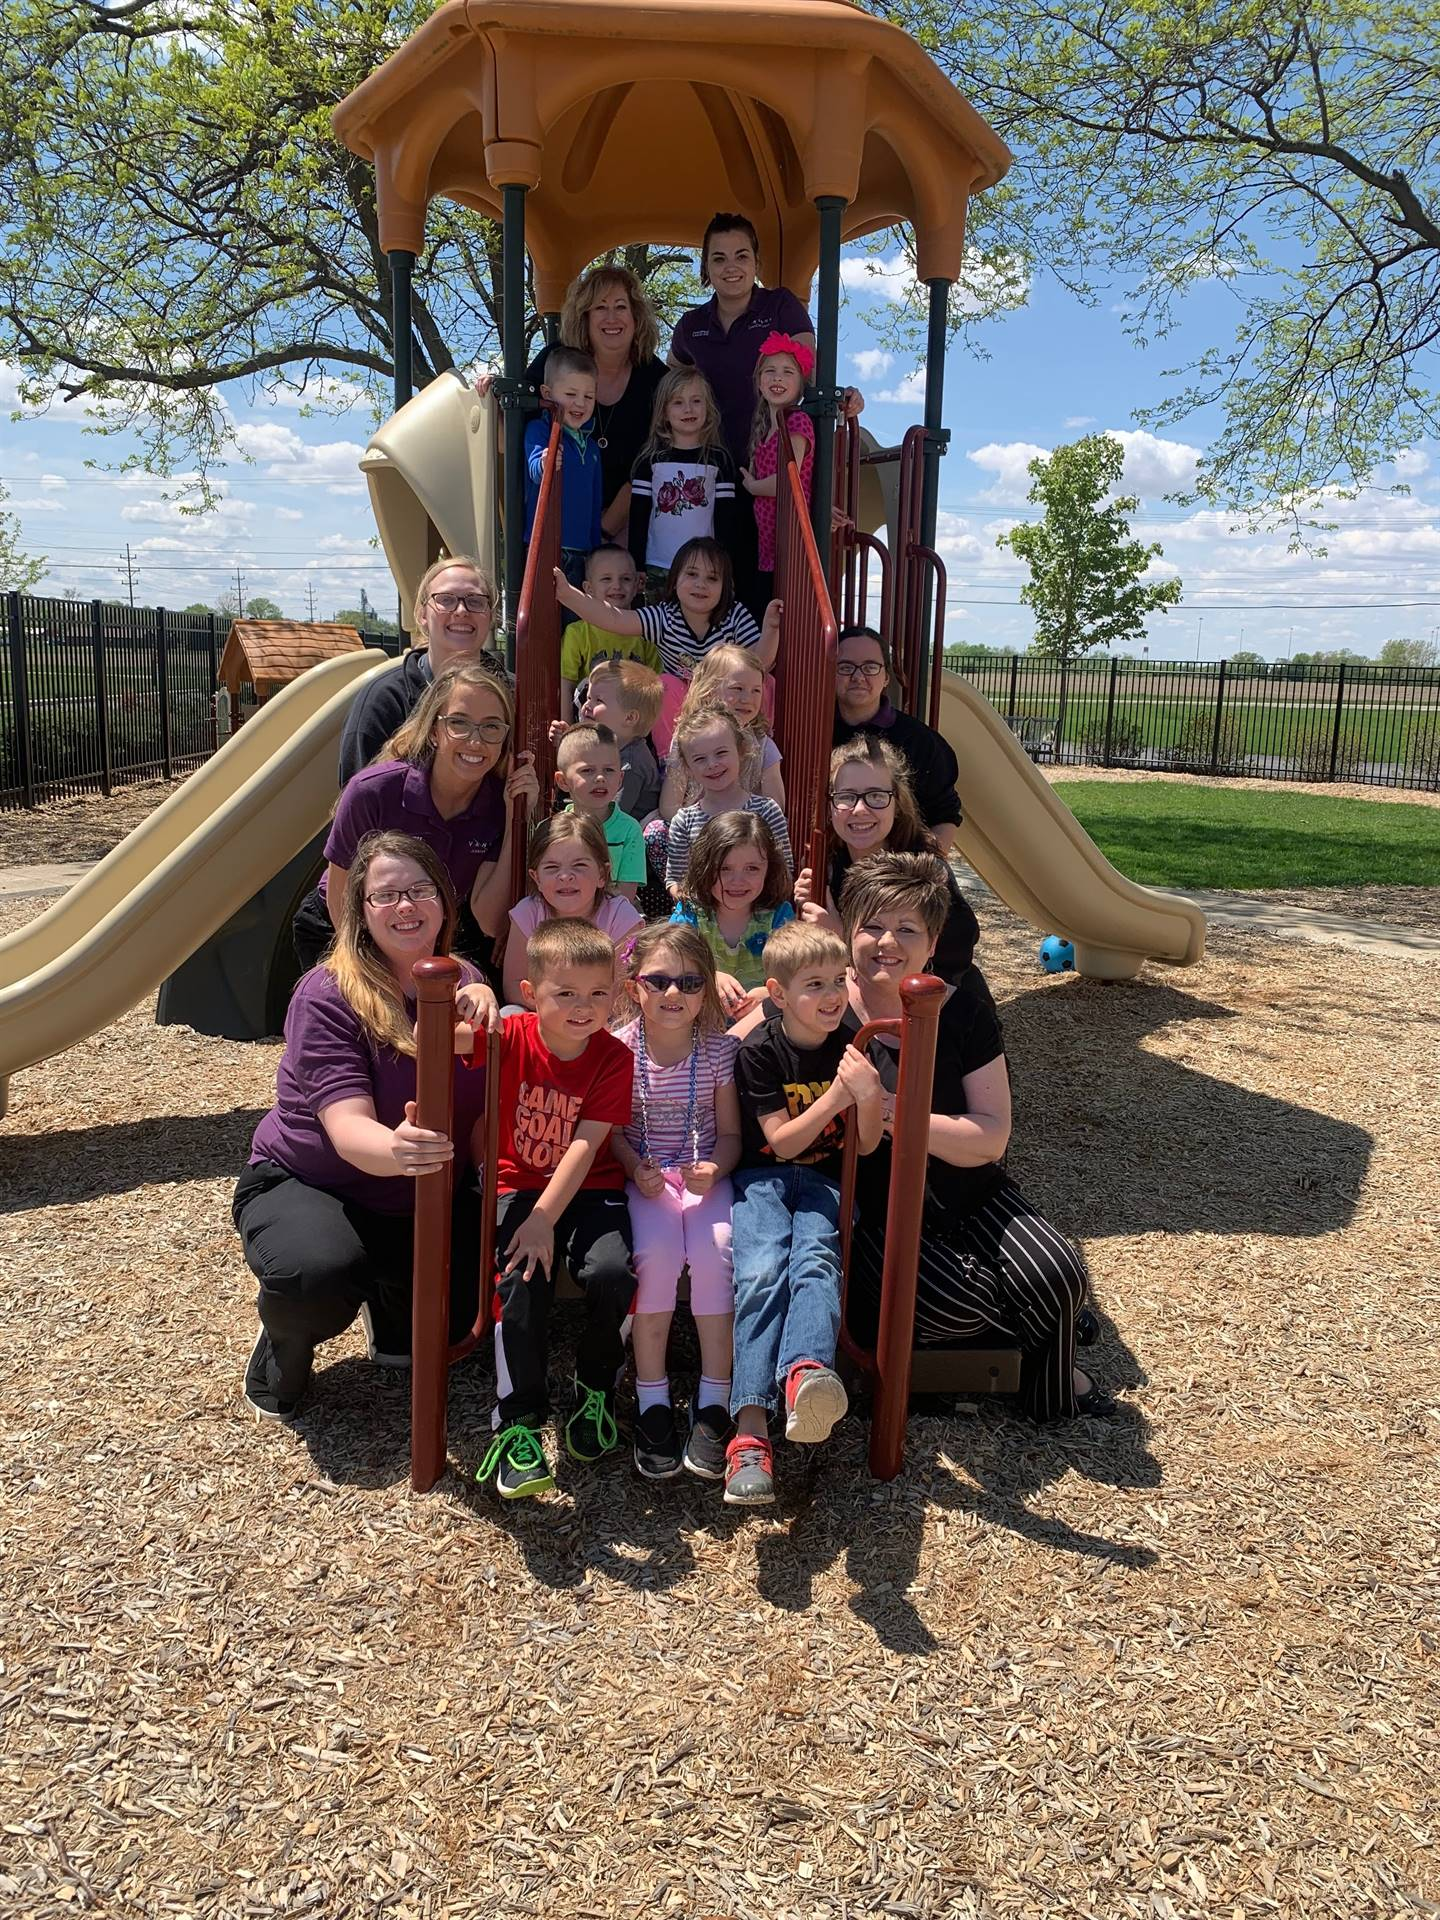 Early Childhood Education students pose with the preschool students on the playground equipment.